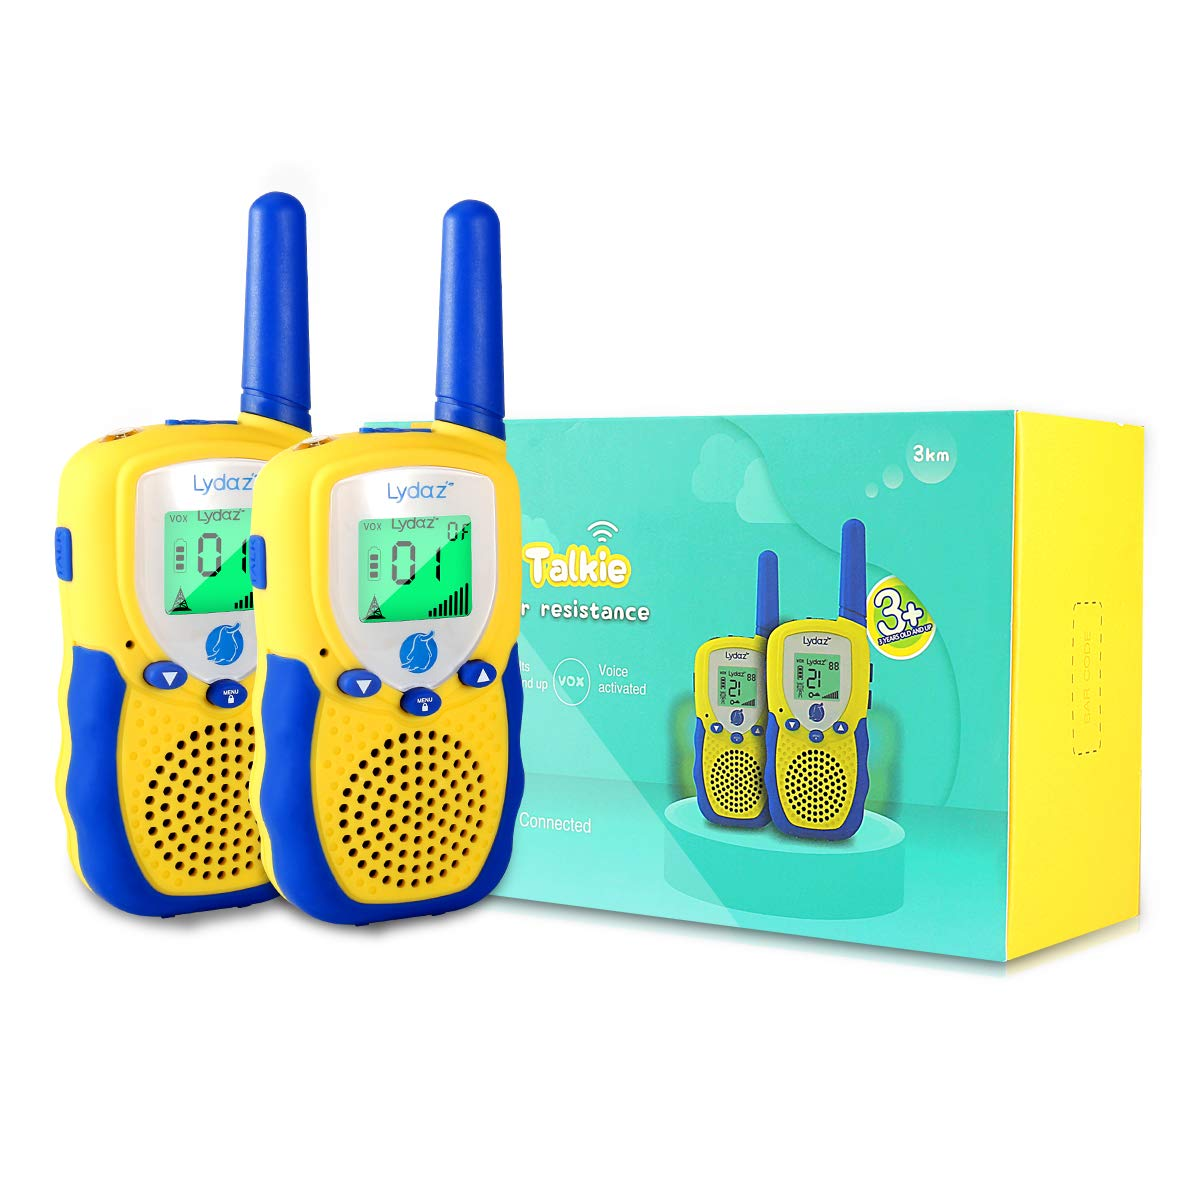 Lydaz Walkie Talkies for Kids, 22 Channels 3 Miles Long Range Electronic Two Way Radios with Rubber Finishing, Indoor Outdoor Play Adventure Toys Gift for Boys Girls Age 3 4 5 6 7 8 9 10 Years Old